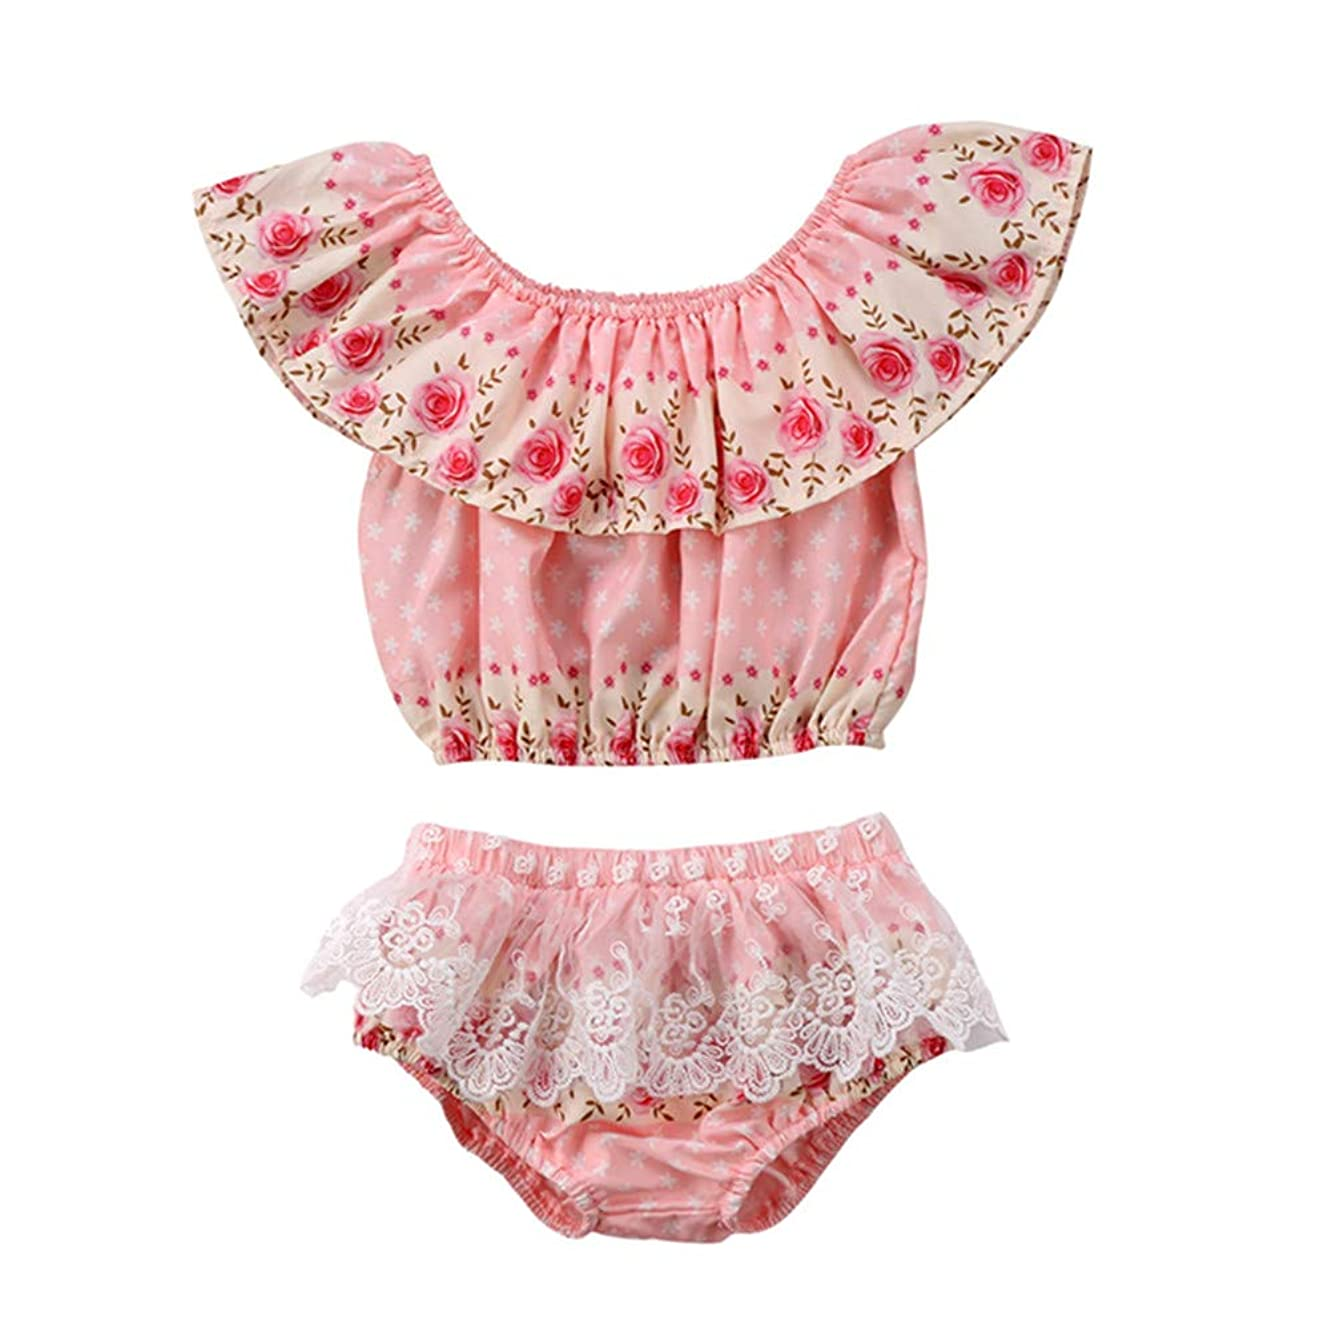 2 Piece Newborn Infant Baby Girl Floral Ruffle Crop Tops+Lace Panties Briefs Short Outfits Summer Clothes Set